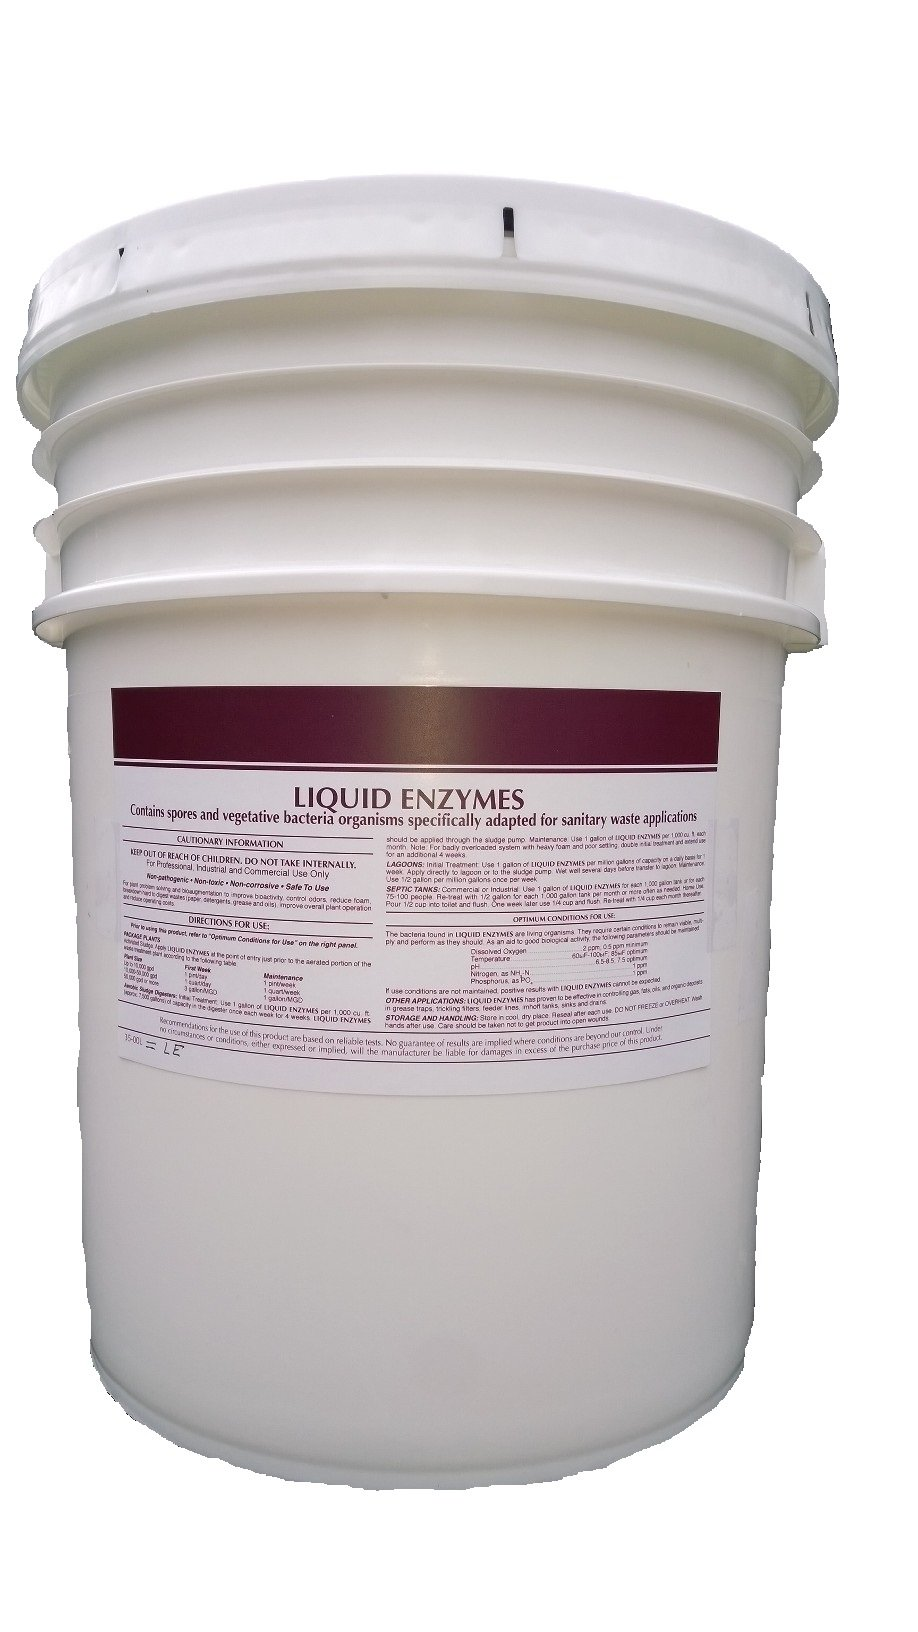 Patriot Chemical Sales 5 Gallon Pail Septic Tank Treatment Liquid Enzymes Grease Trap Cleaner Industrial Strength